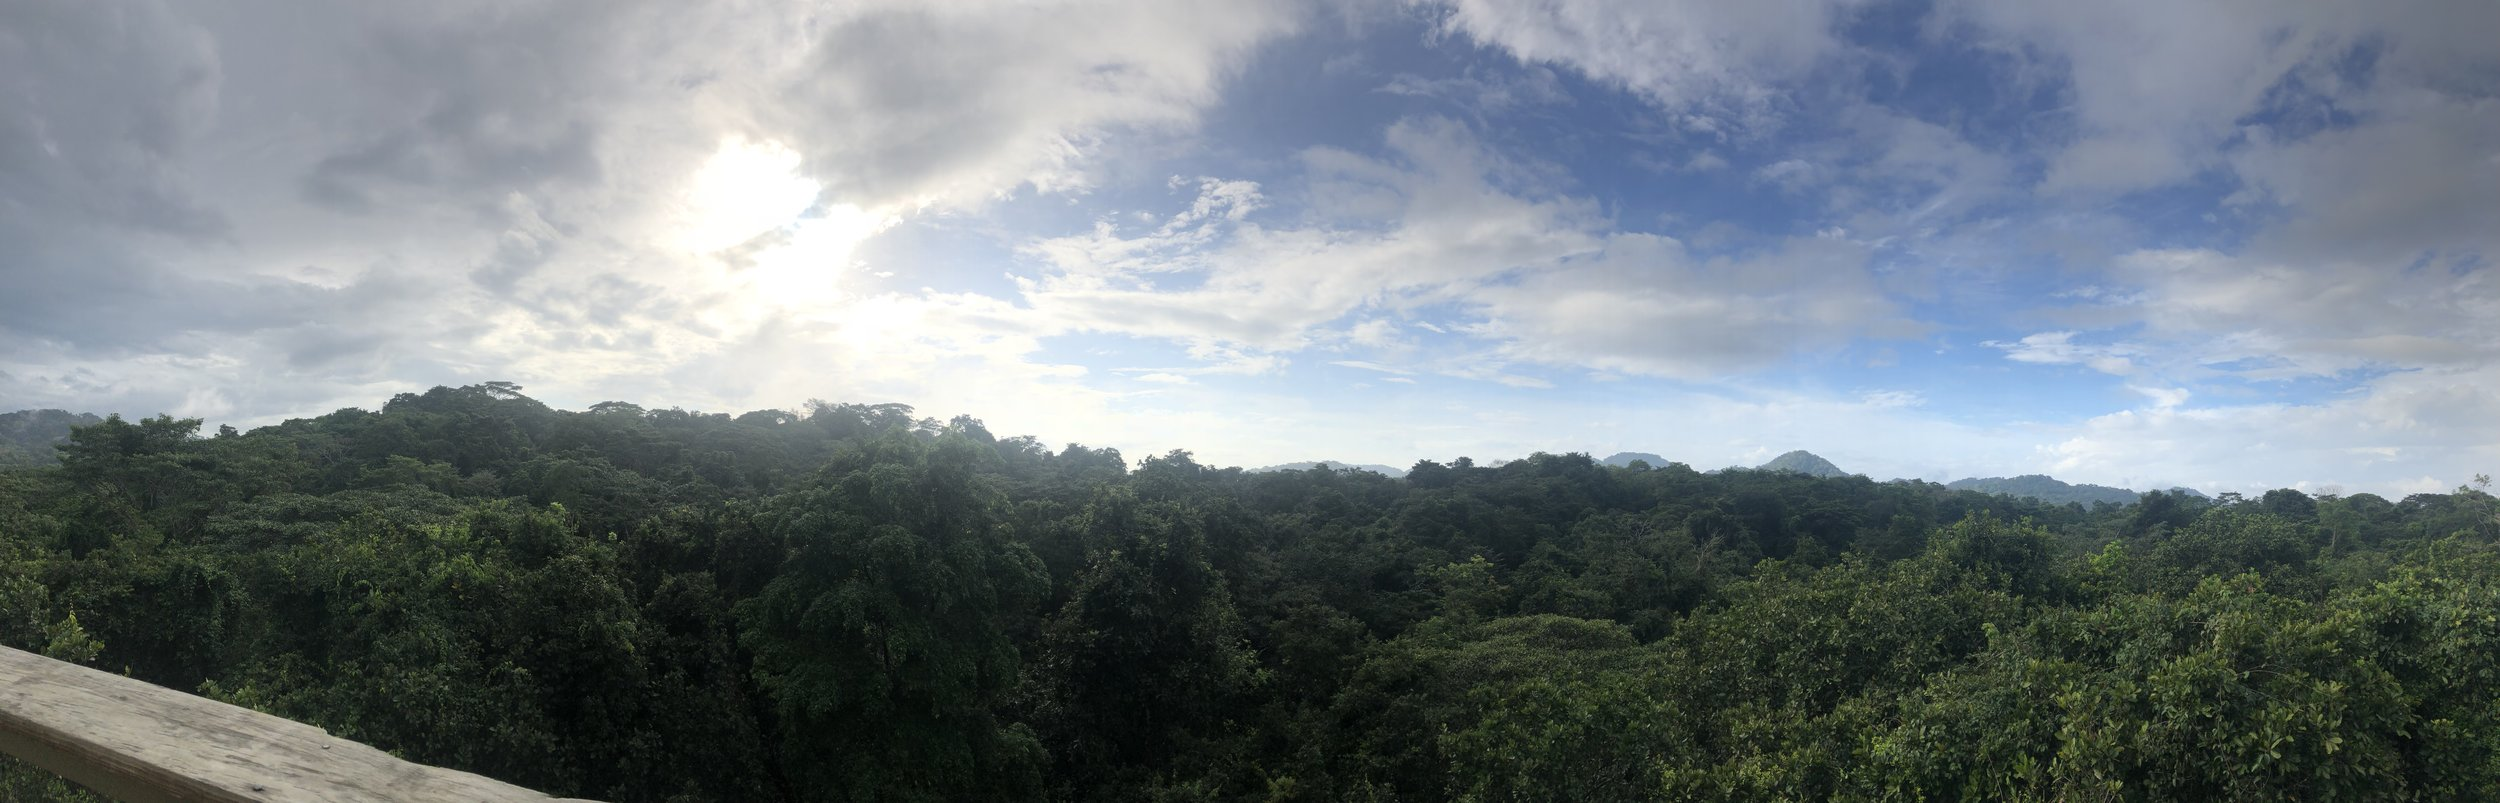 View from atop the rainforest canopy